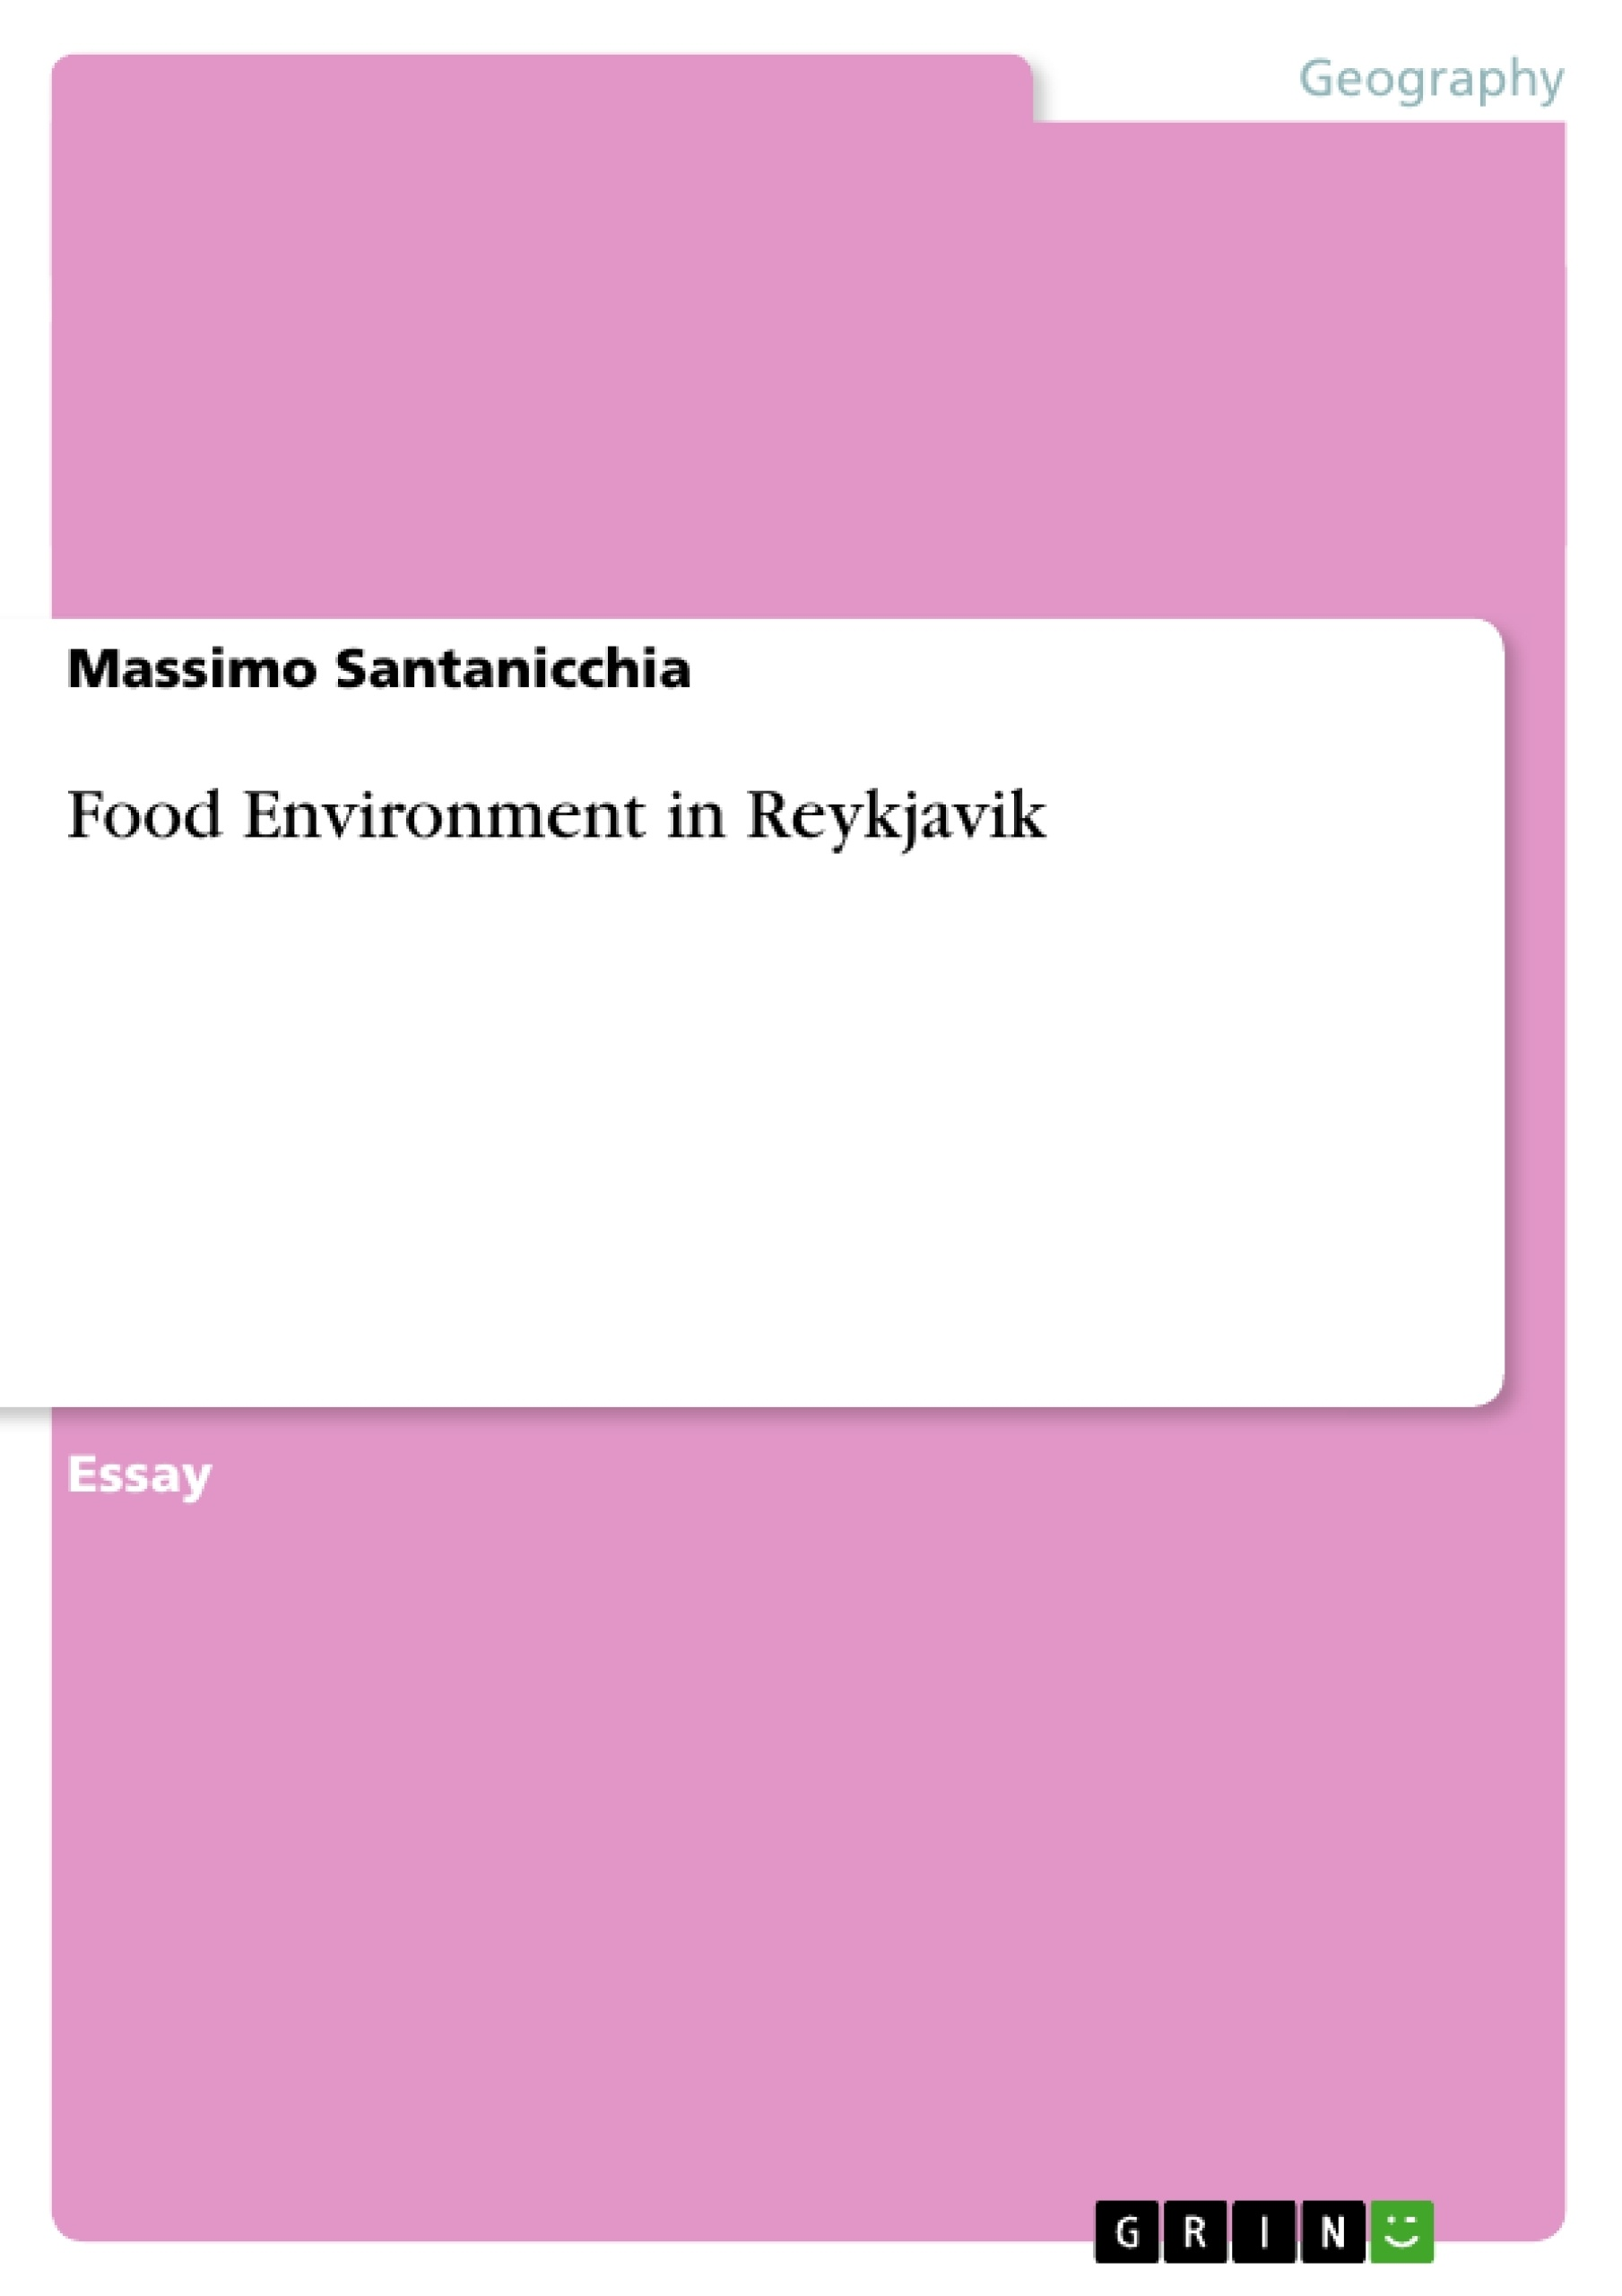 Title: Food Environment in Reykjavik